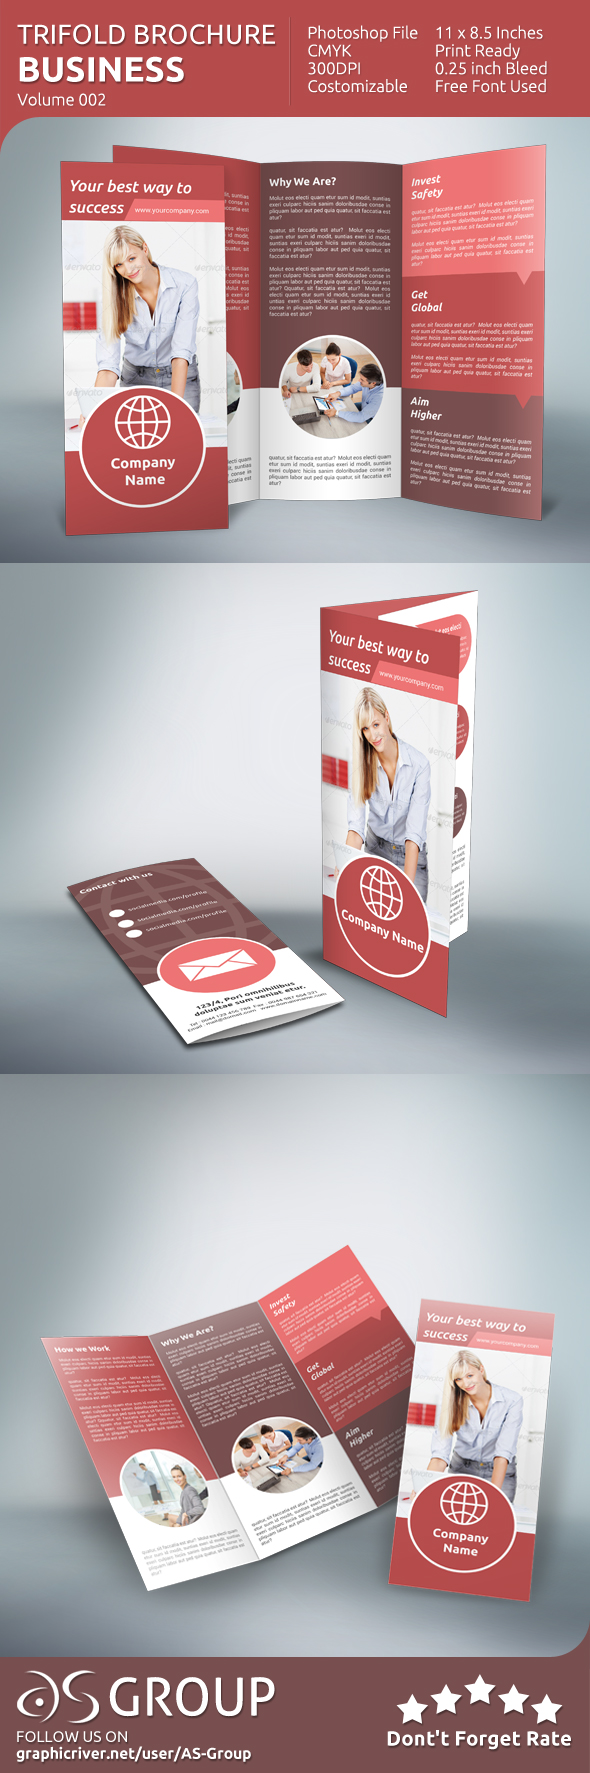 business_tri-fold-brochure-v002-preview